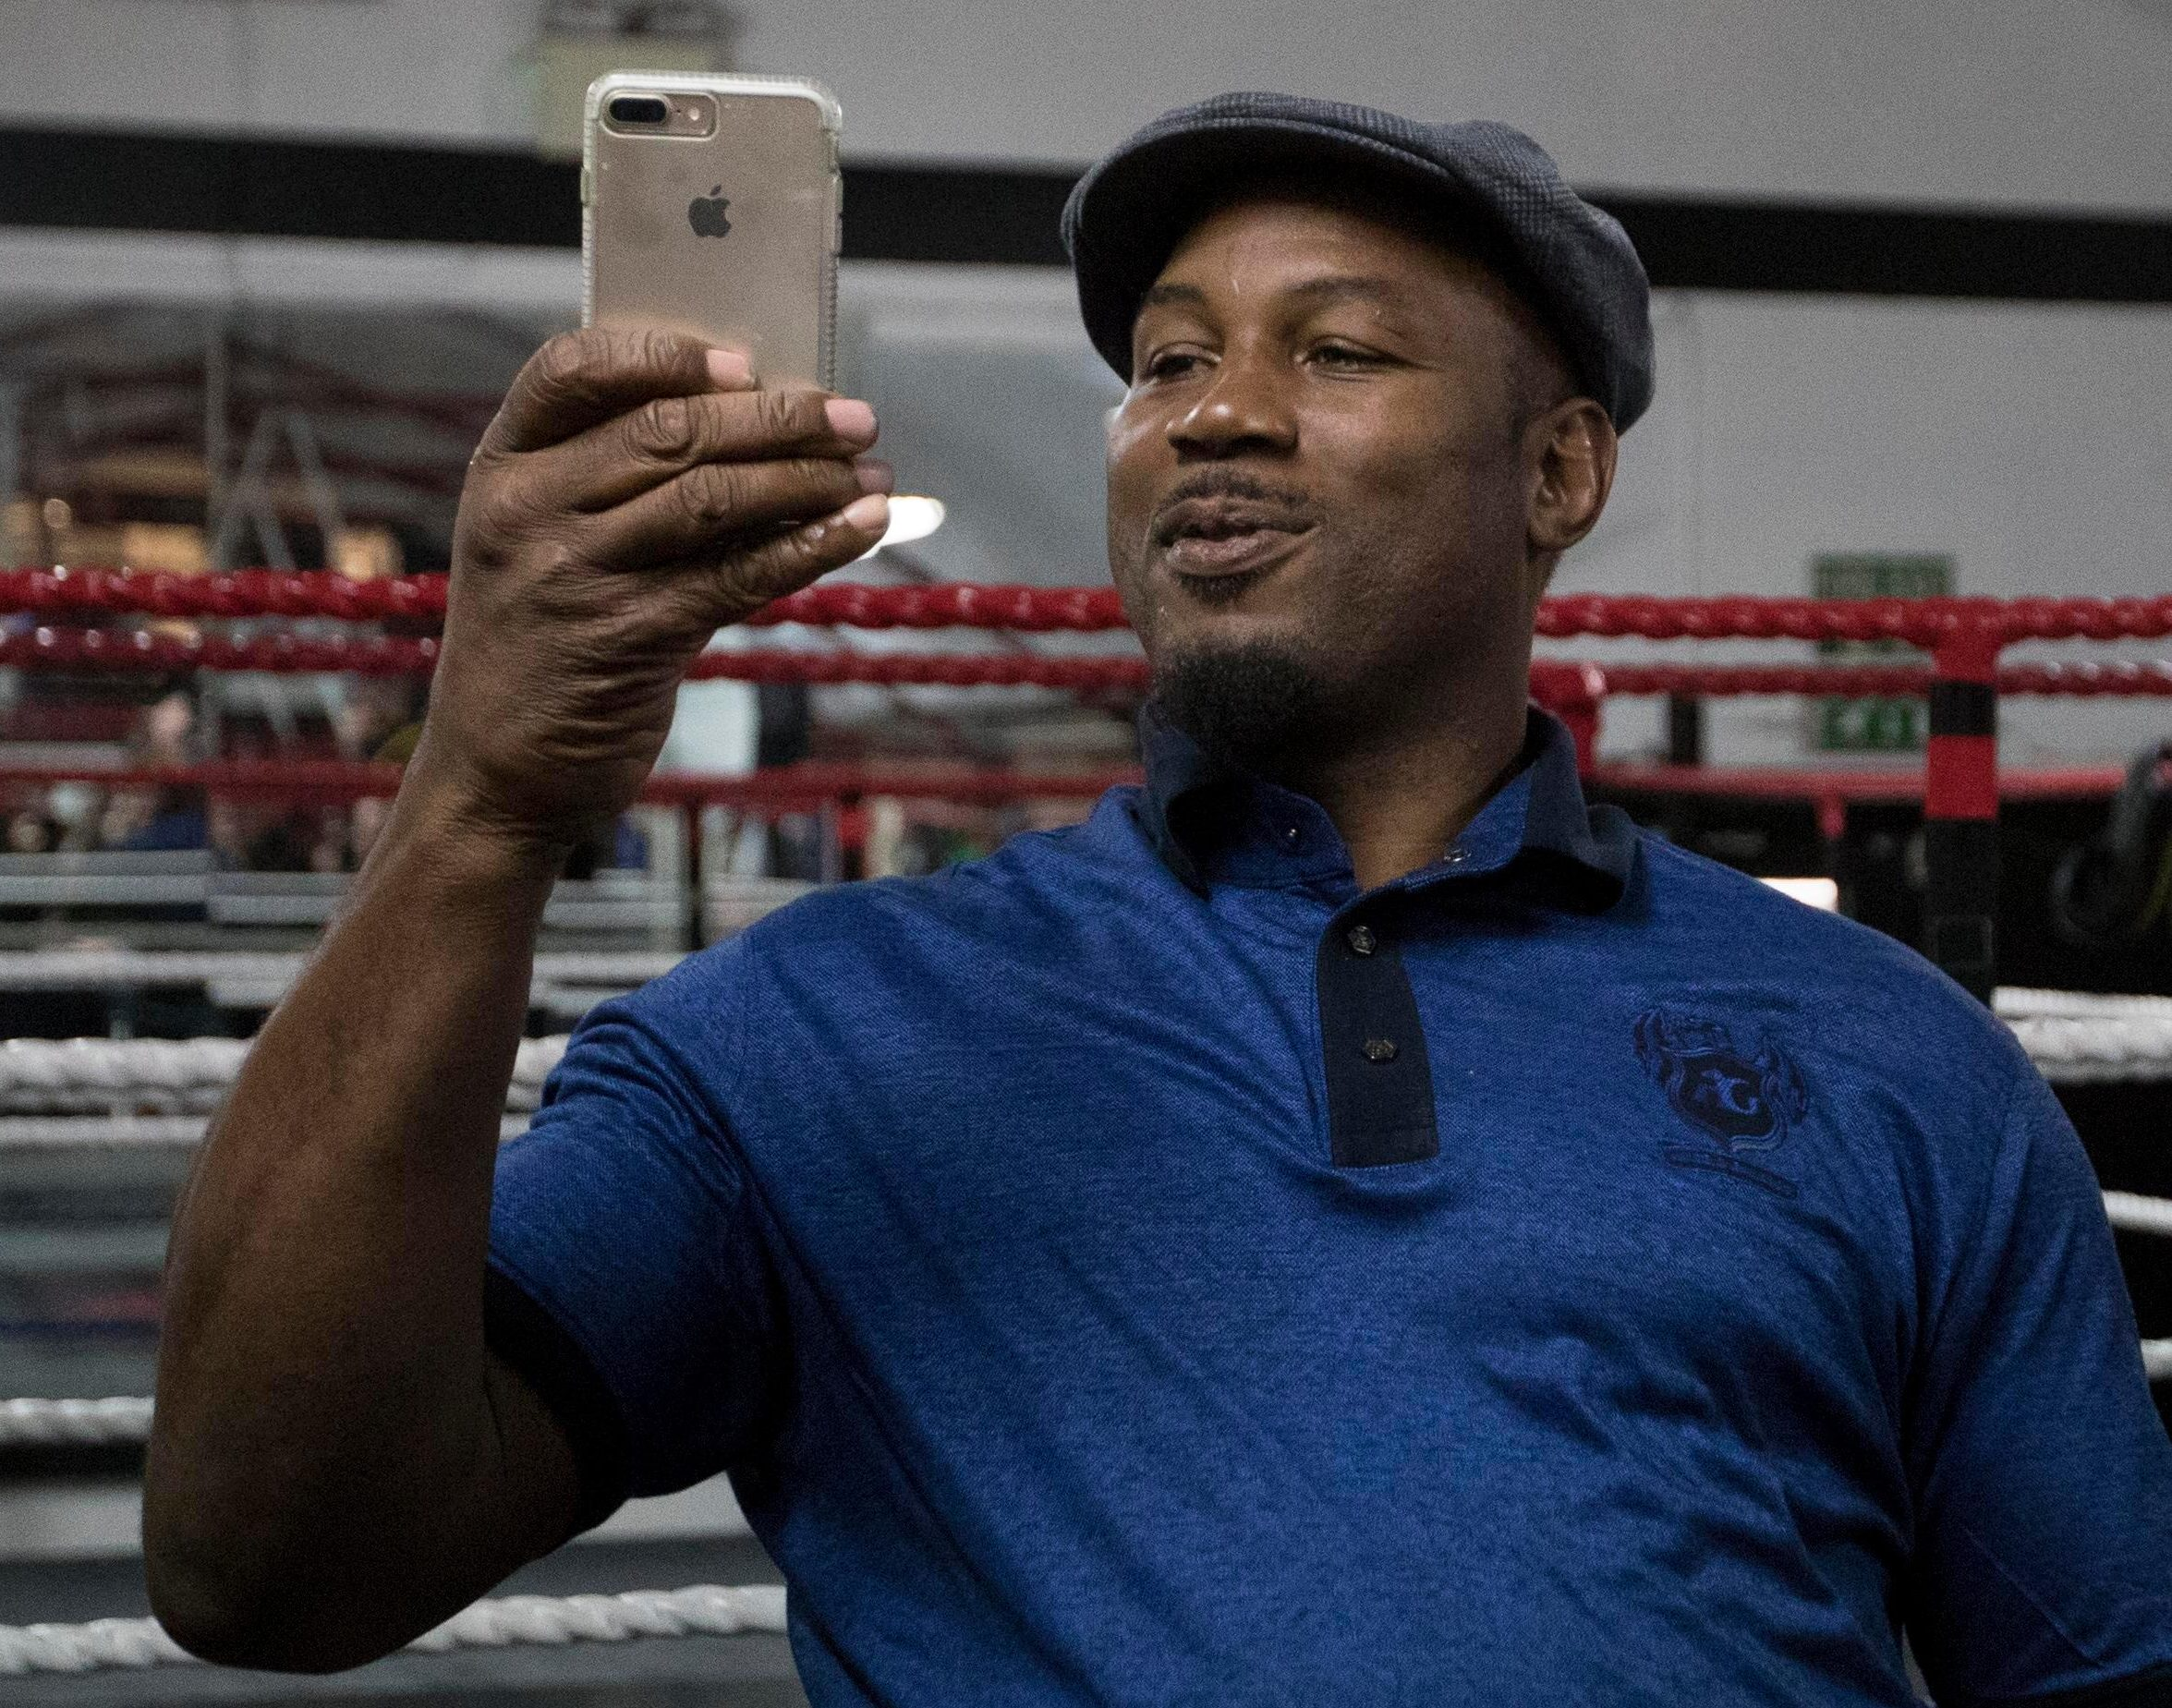 Lennox Lewis did not watch the KSI vs Logan Paul fight but he knows its power